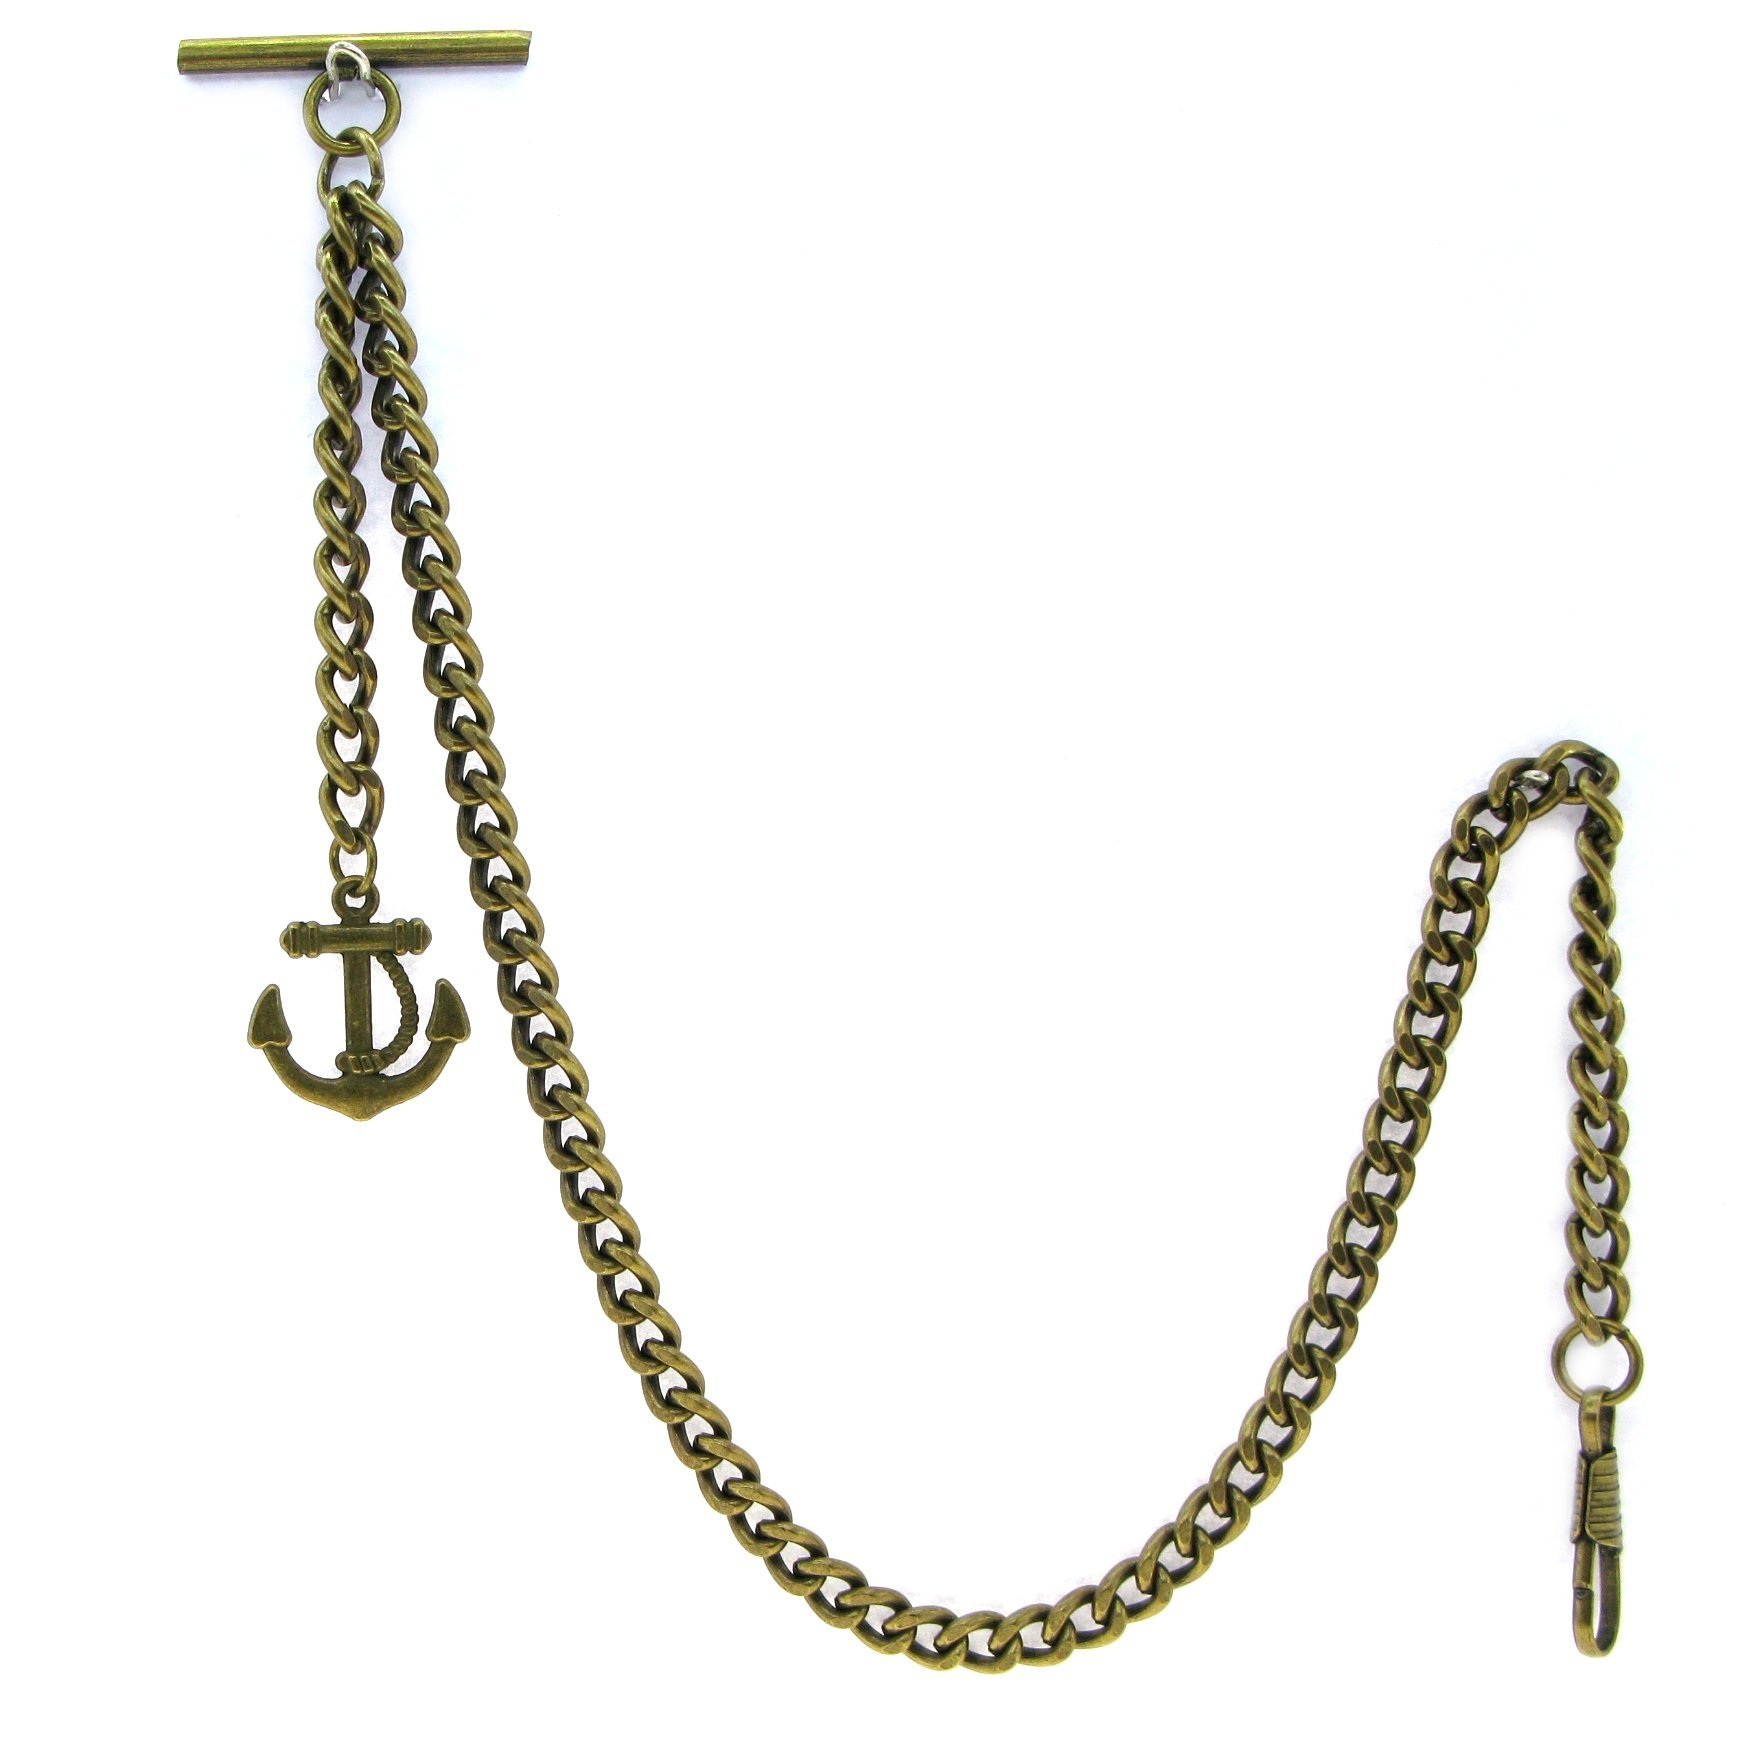 Albert Chain Pocket Watch Curb Link Chain Antique Brass Plating Anchor Fob T Bar AC24 by watchvshop (Image #1)